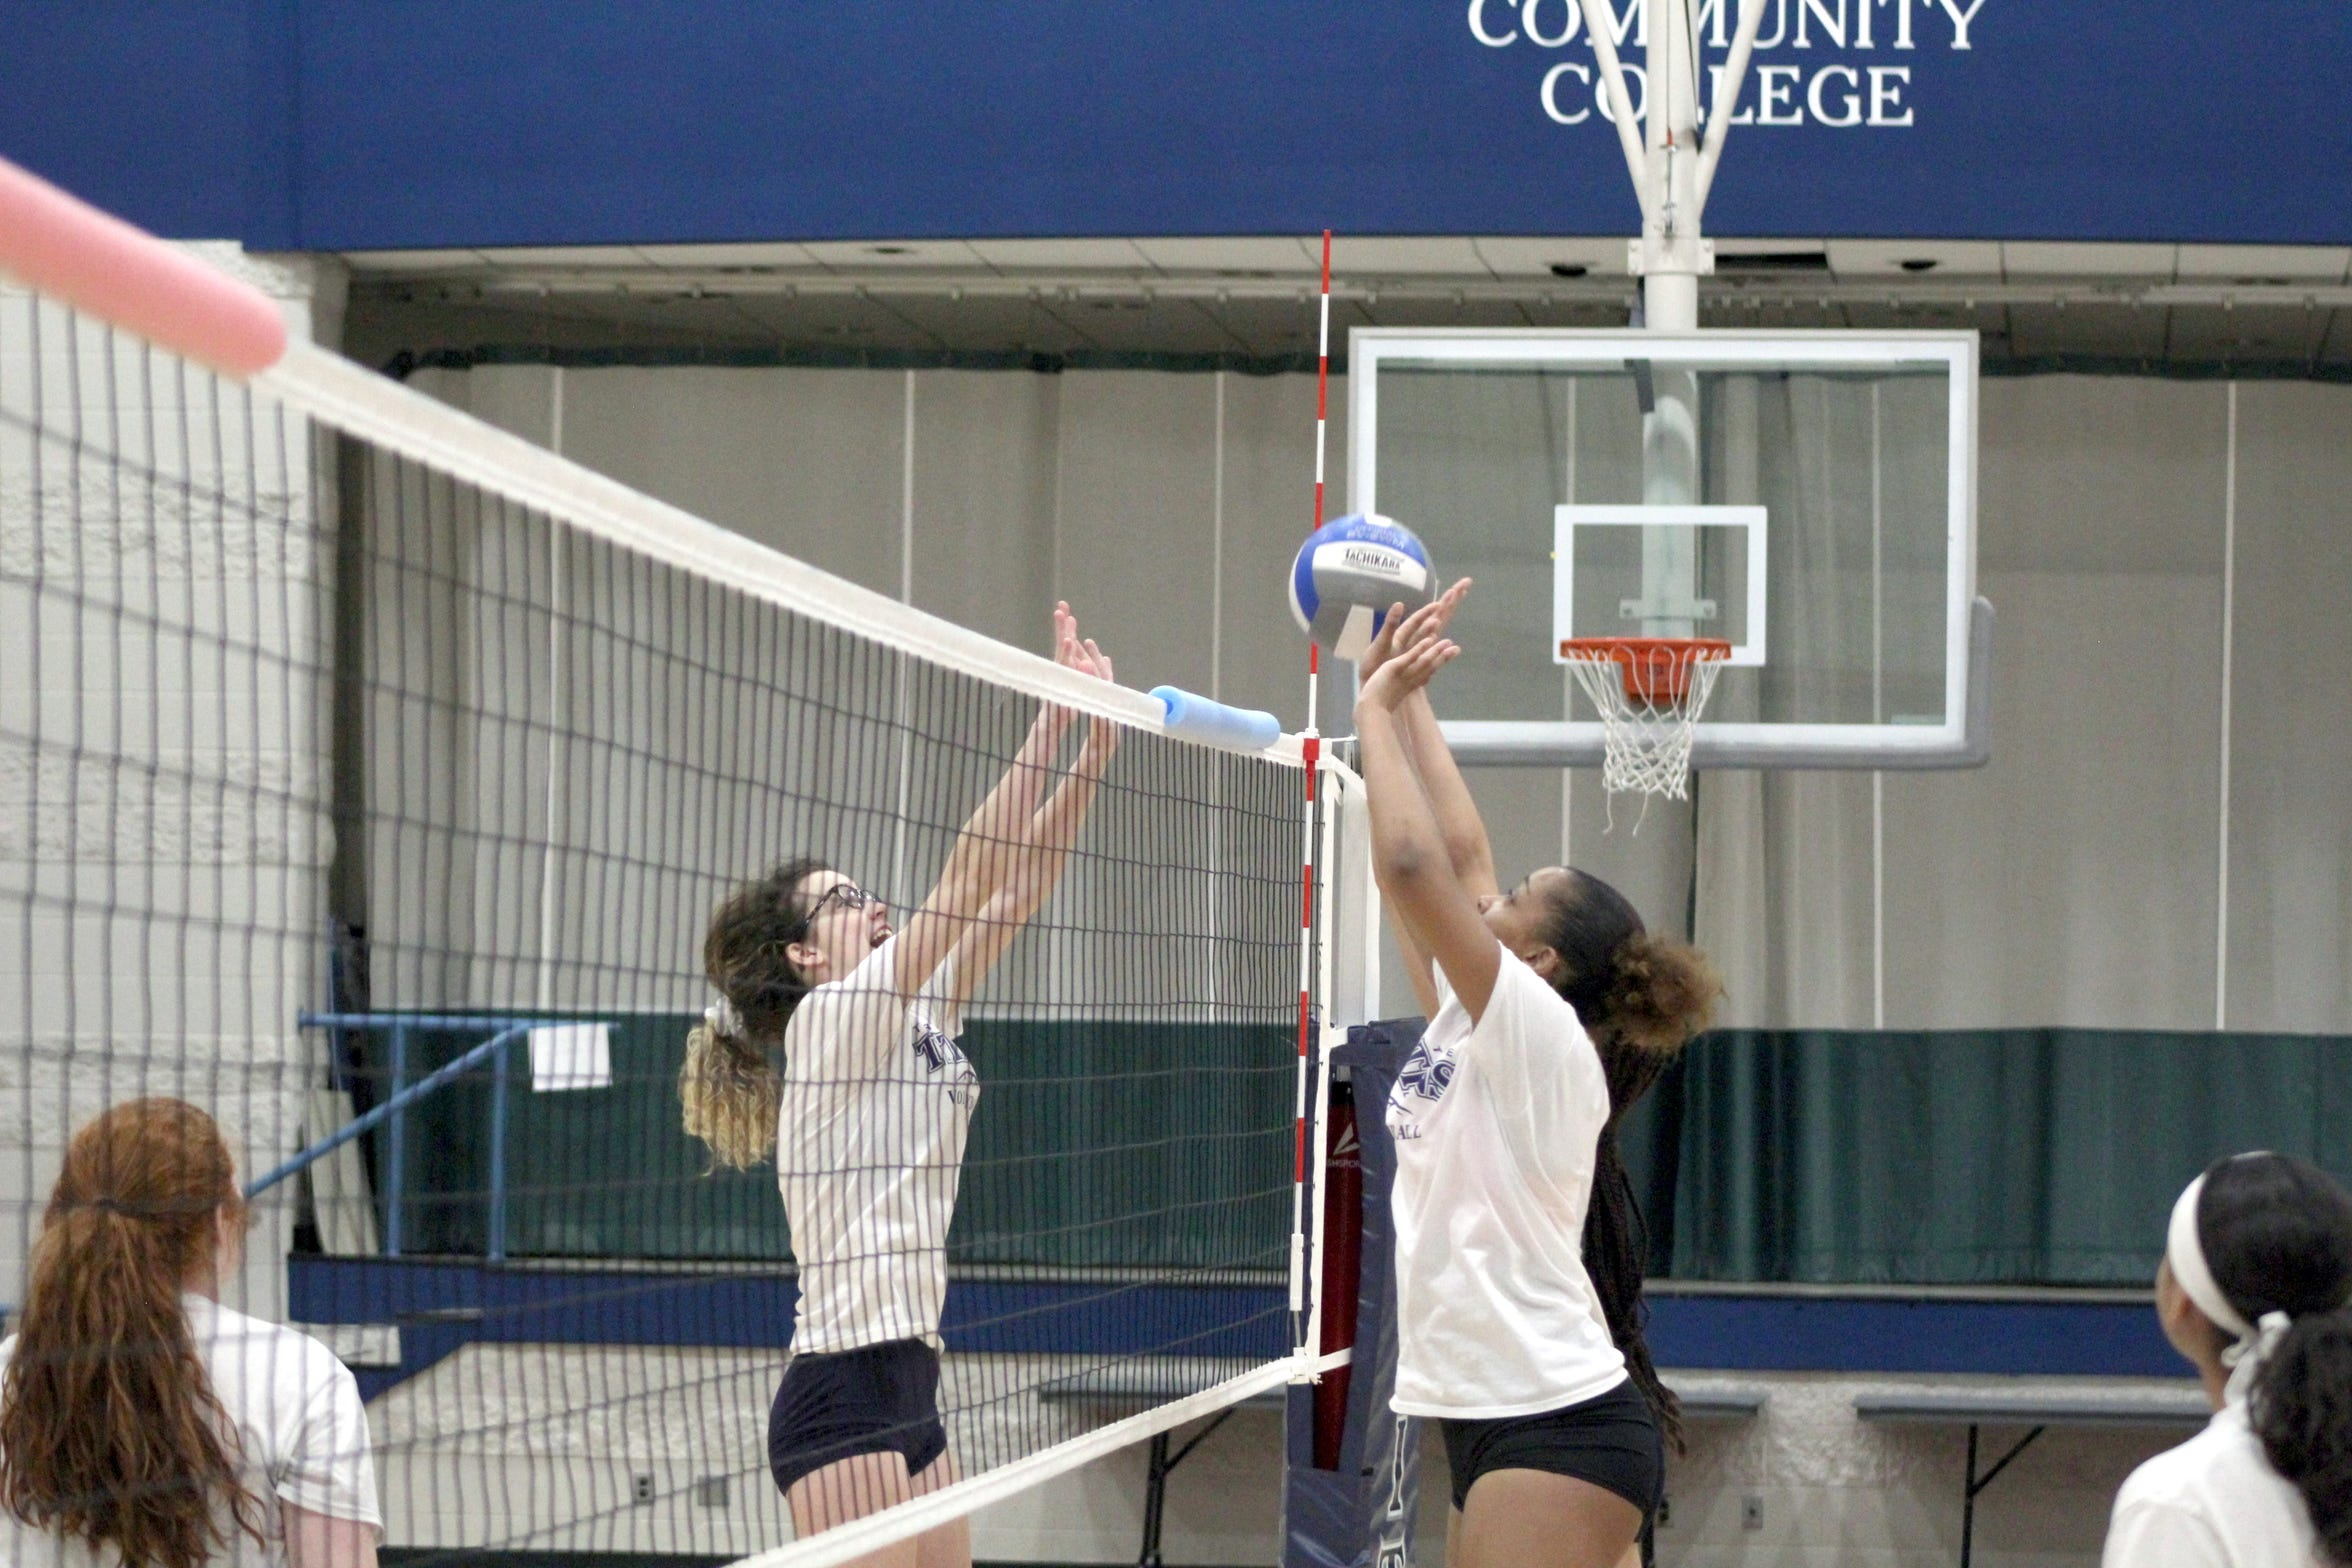 Terra State volleyball players battle at the net during an Oct. 18 practice. The team finishes its season Oct. 30 with a home match against University of Rio Grande JV.